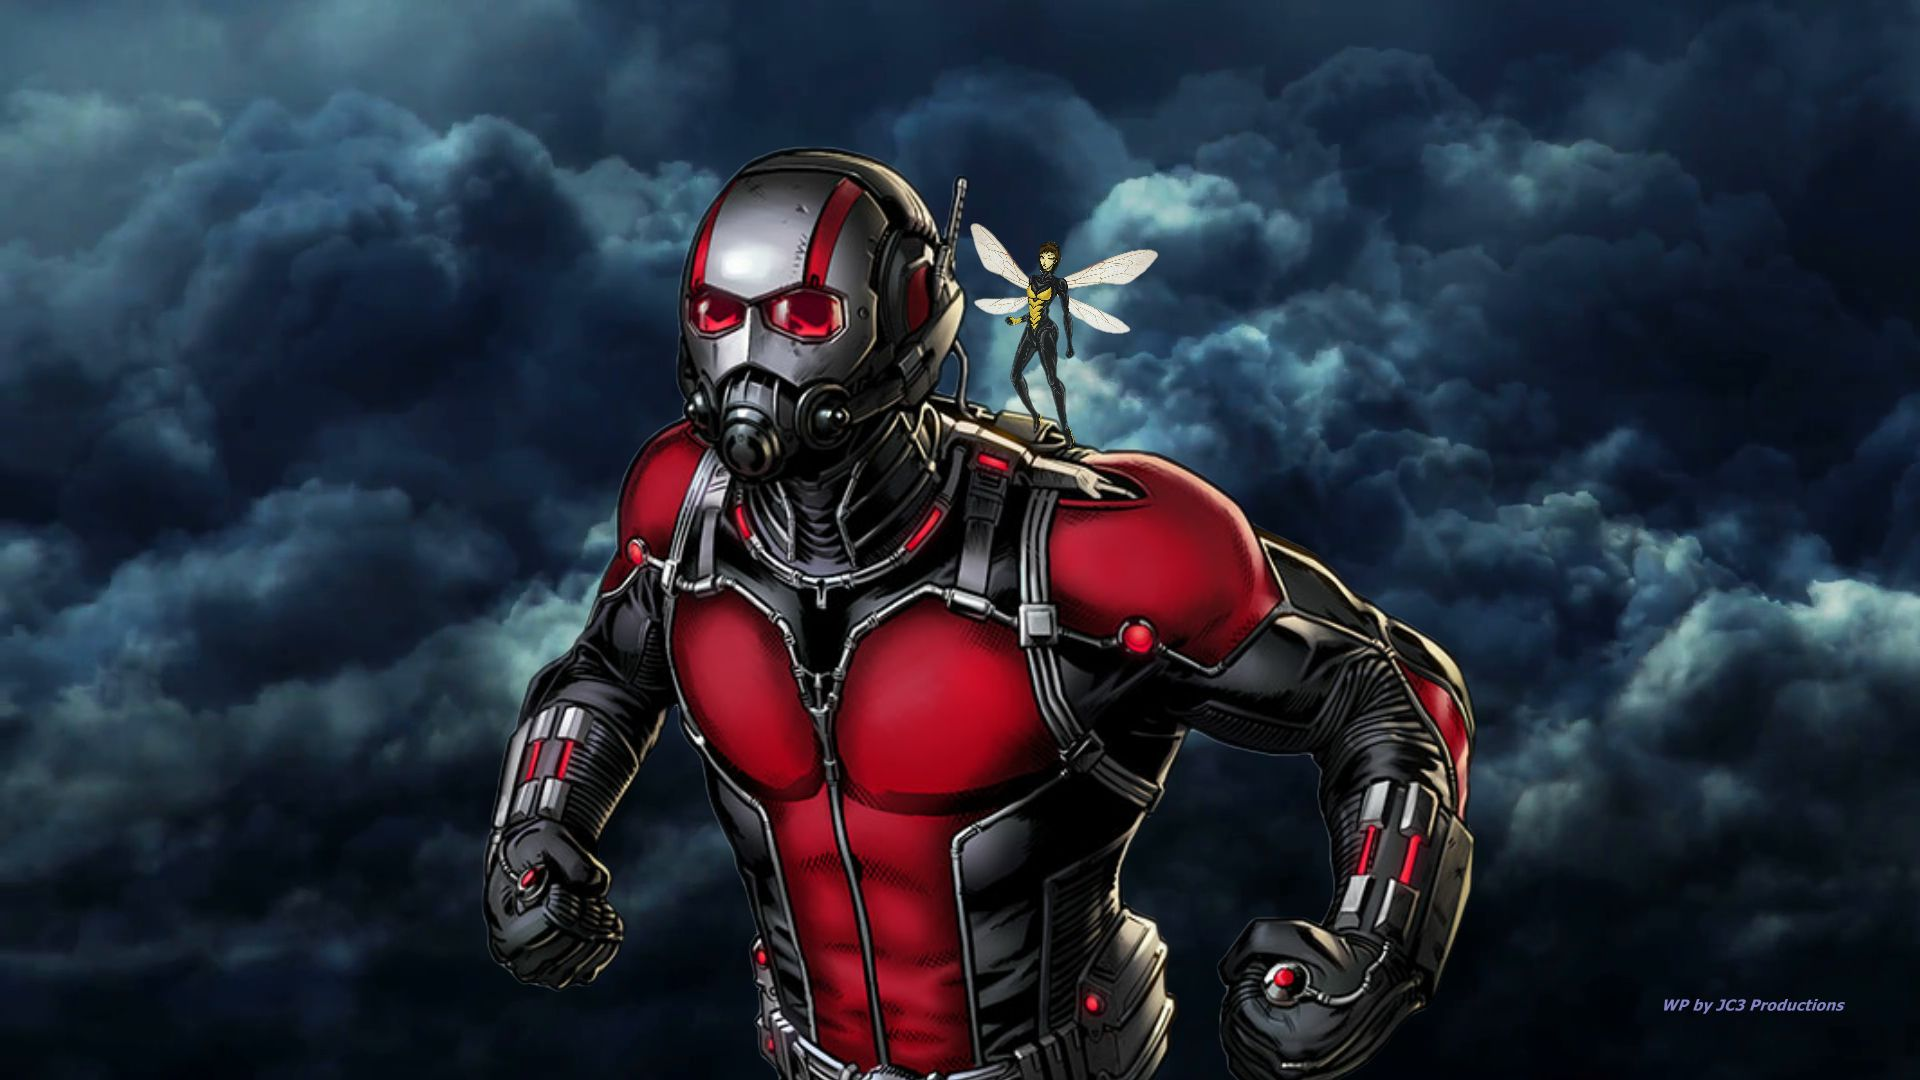 ANT-MAN Wallpaper - The Wasp 2 by Curtdawg53